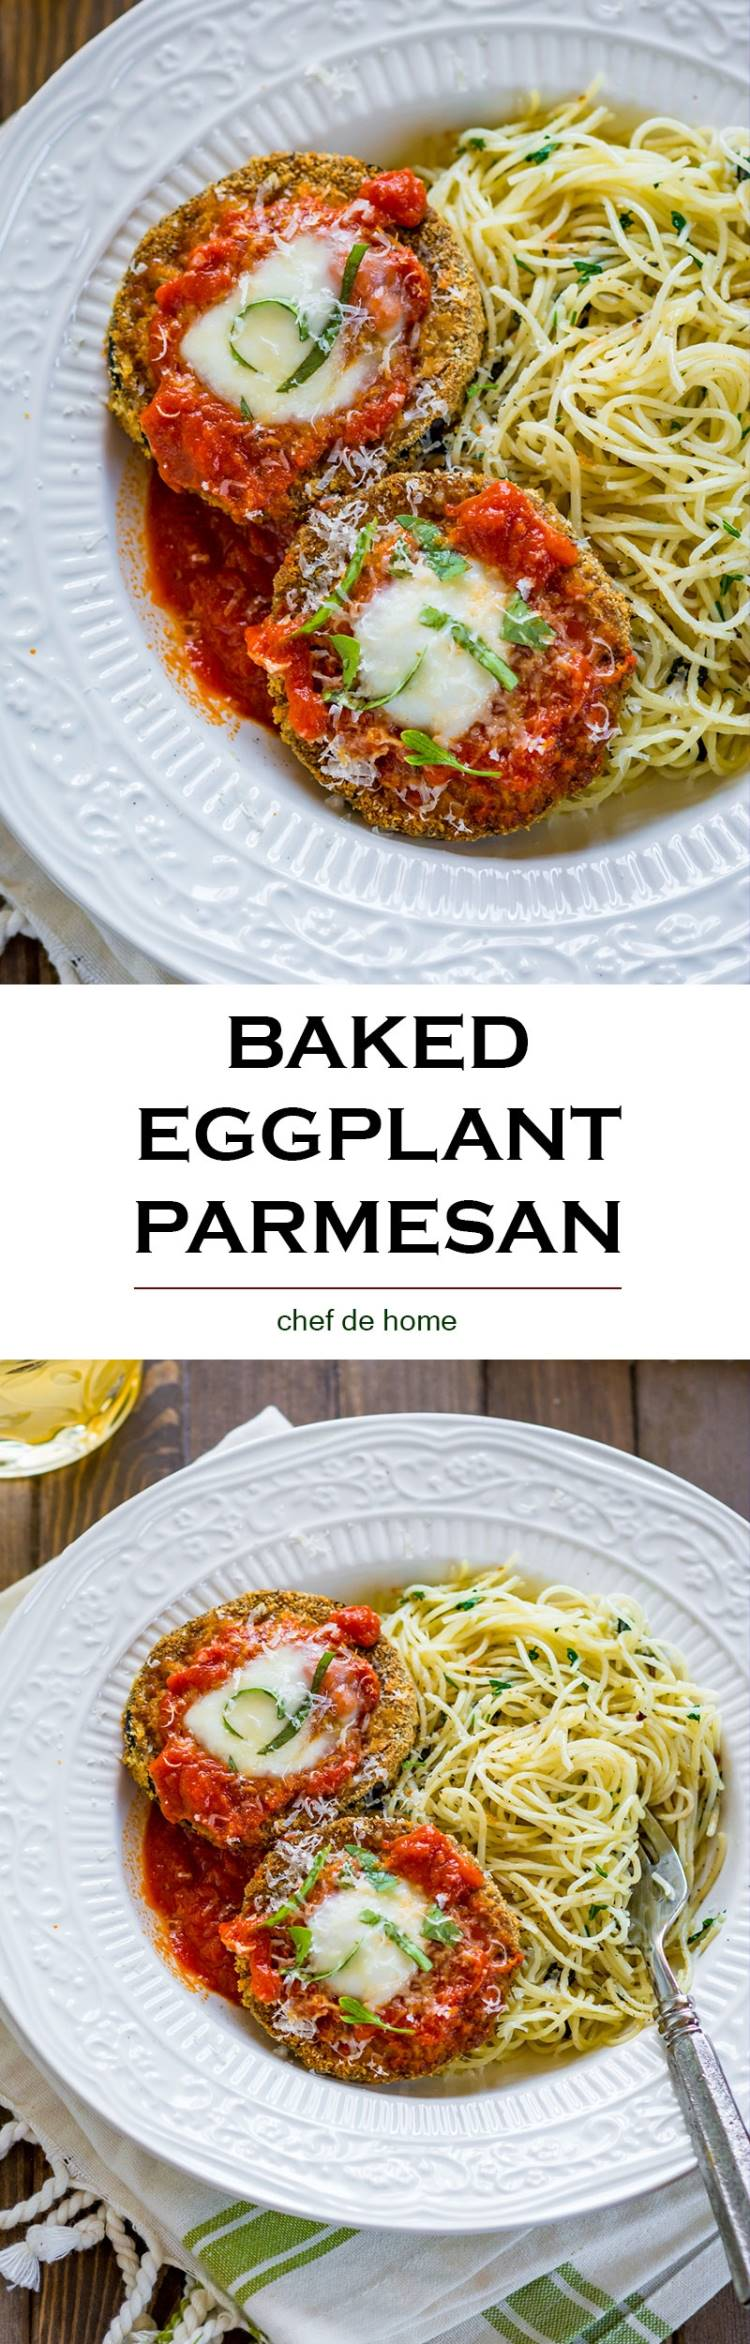 Best ever baked eggplant parmesan cook in almost no oil has far less calories and tastes crispy and always comes out evenly cooked | chefdehome.com